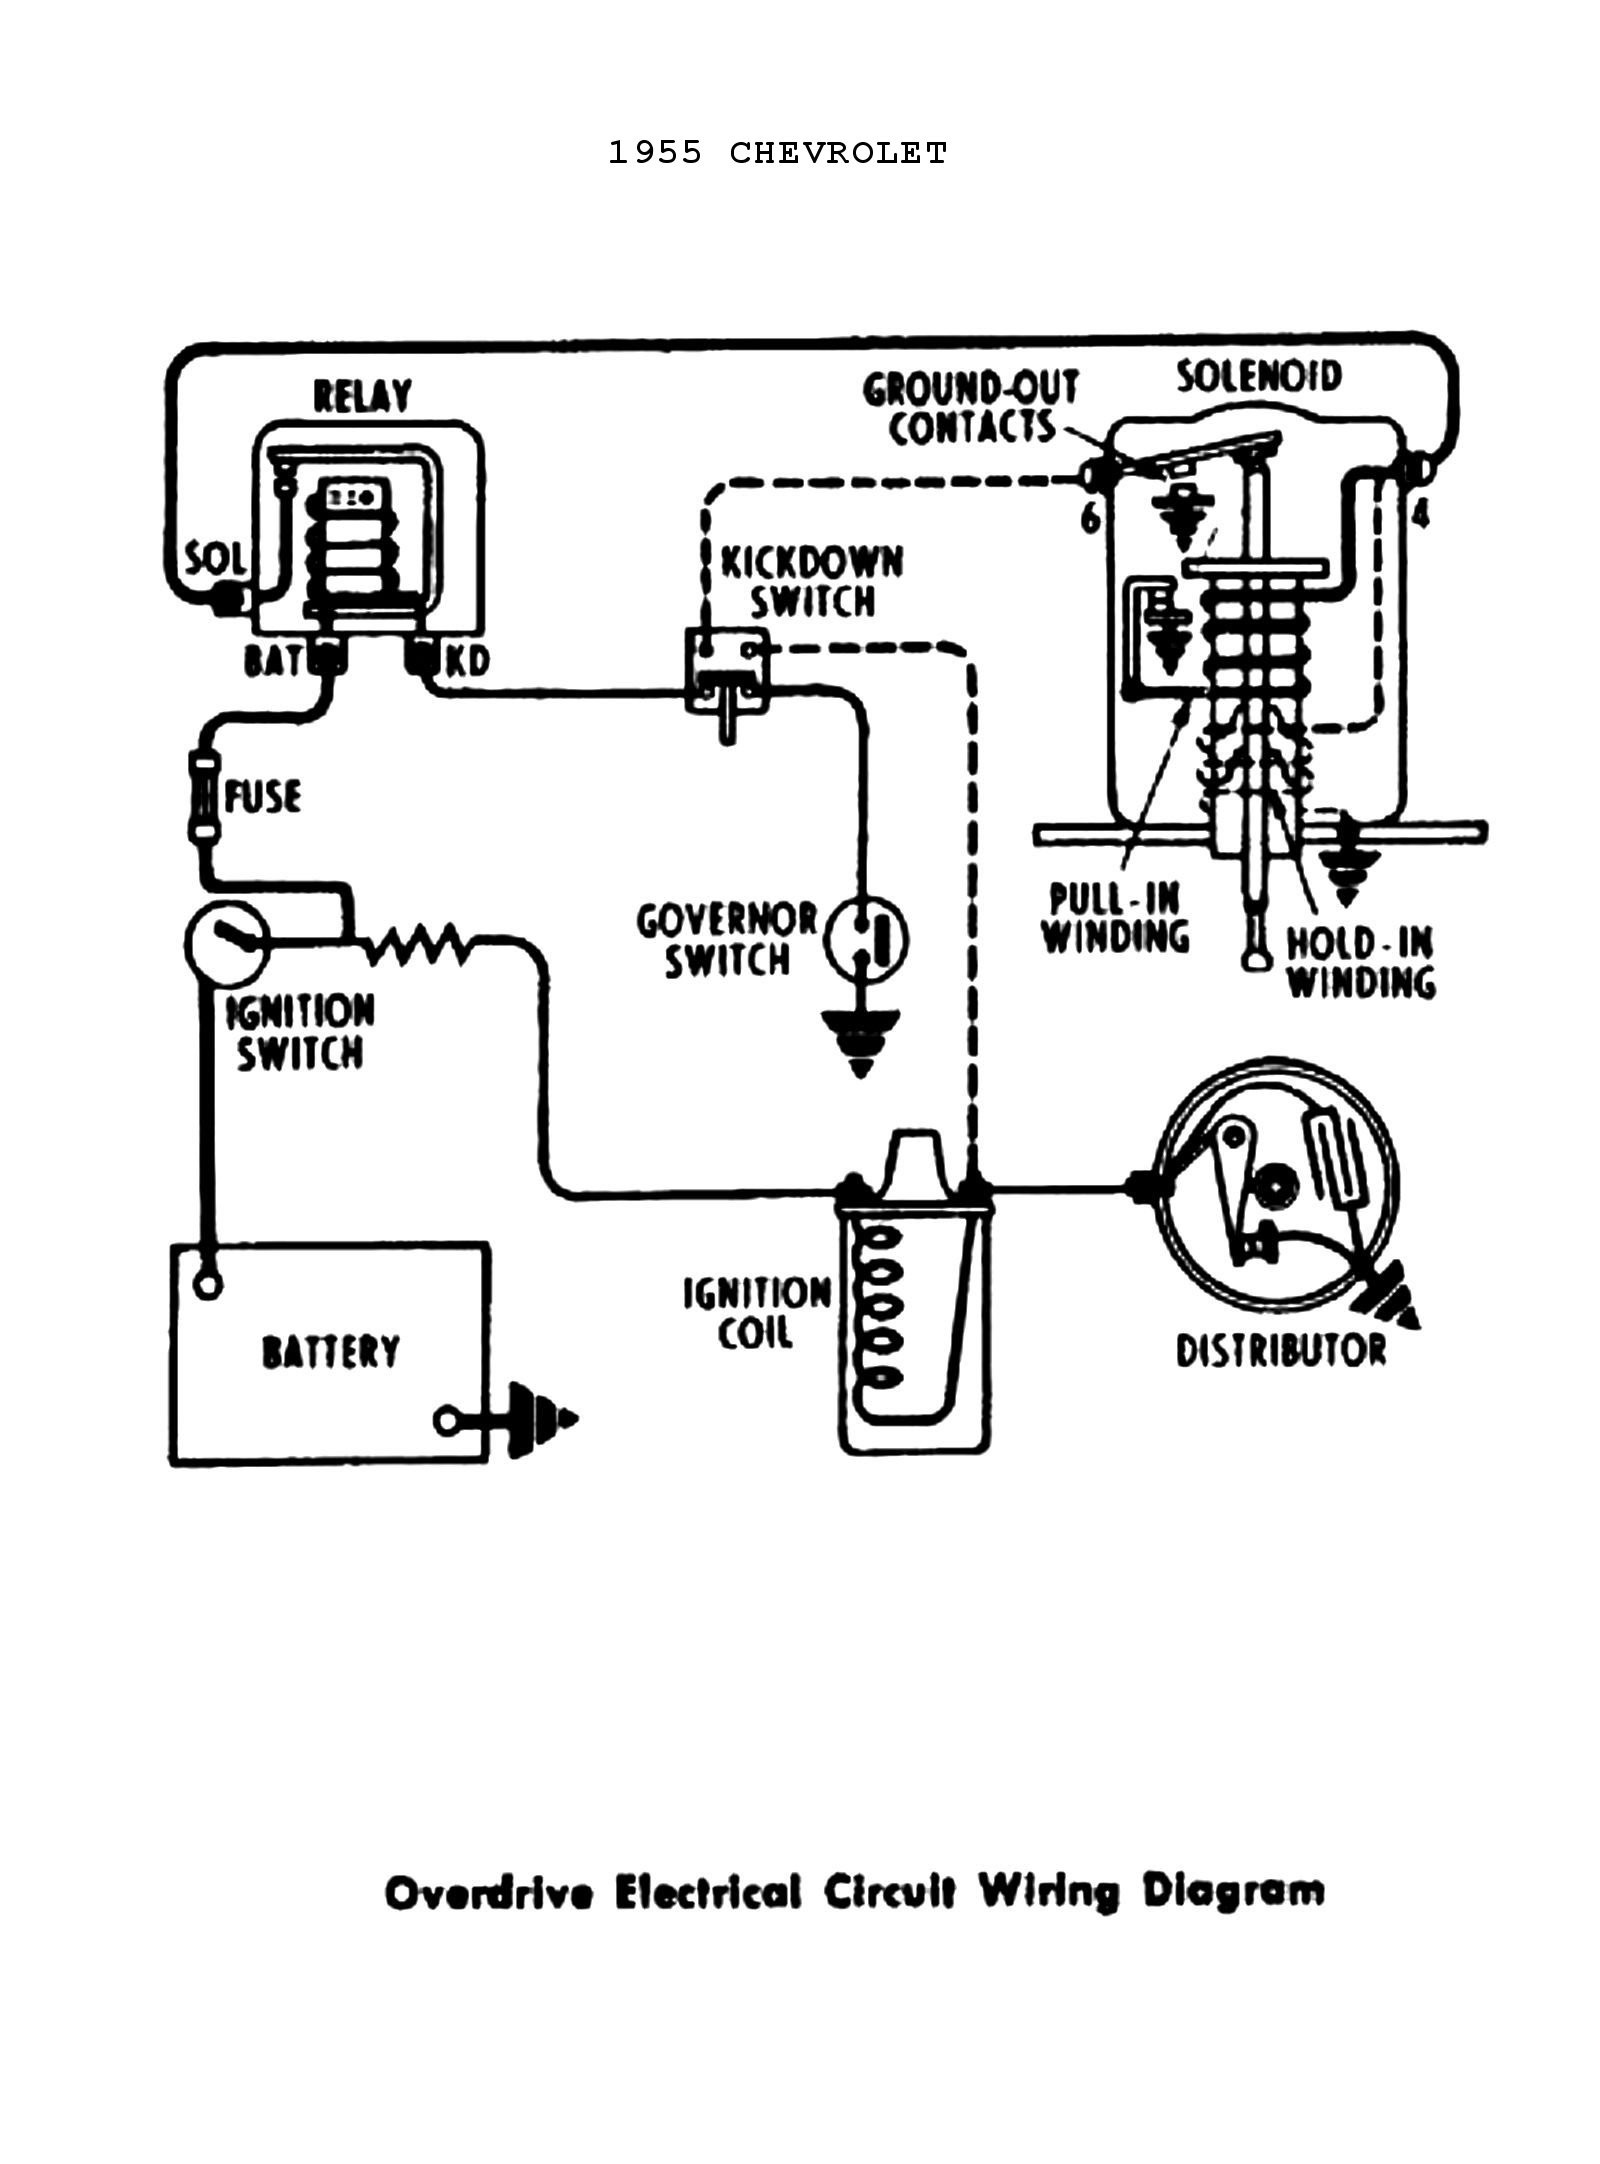 Key Switch Wire Diagram for A Mercury Outboaed with Chock Ignitionwiring Of Key Switch Wire Diagram for A Mercury Outboaed with Chock